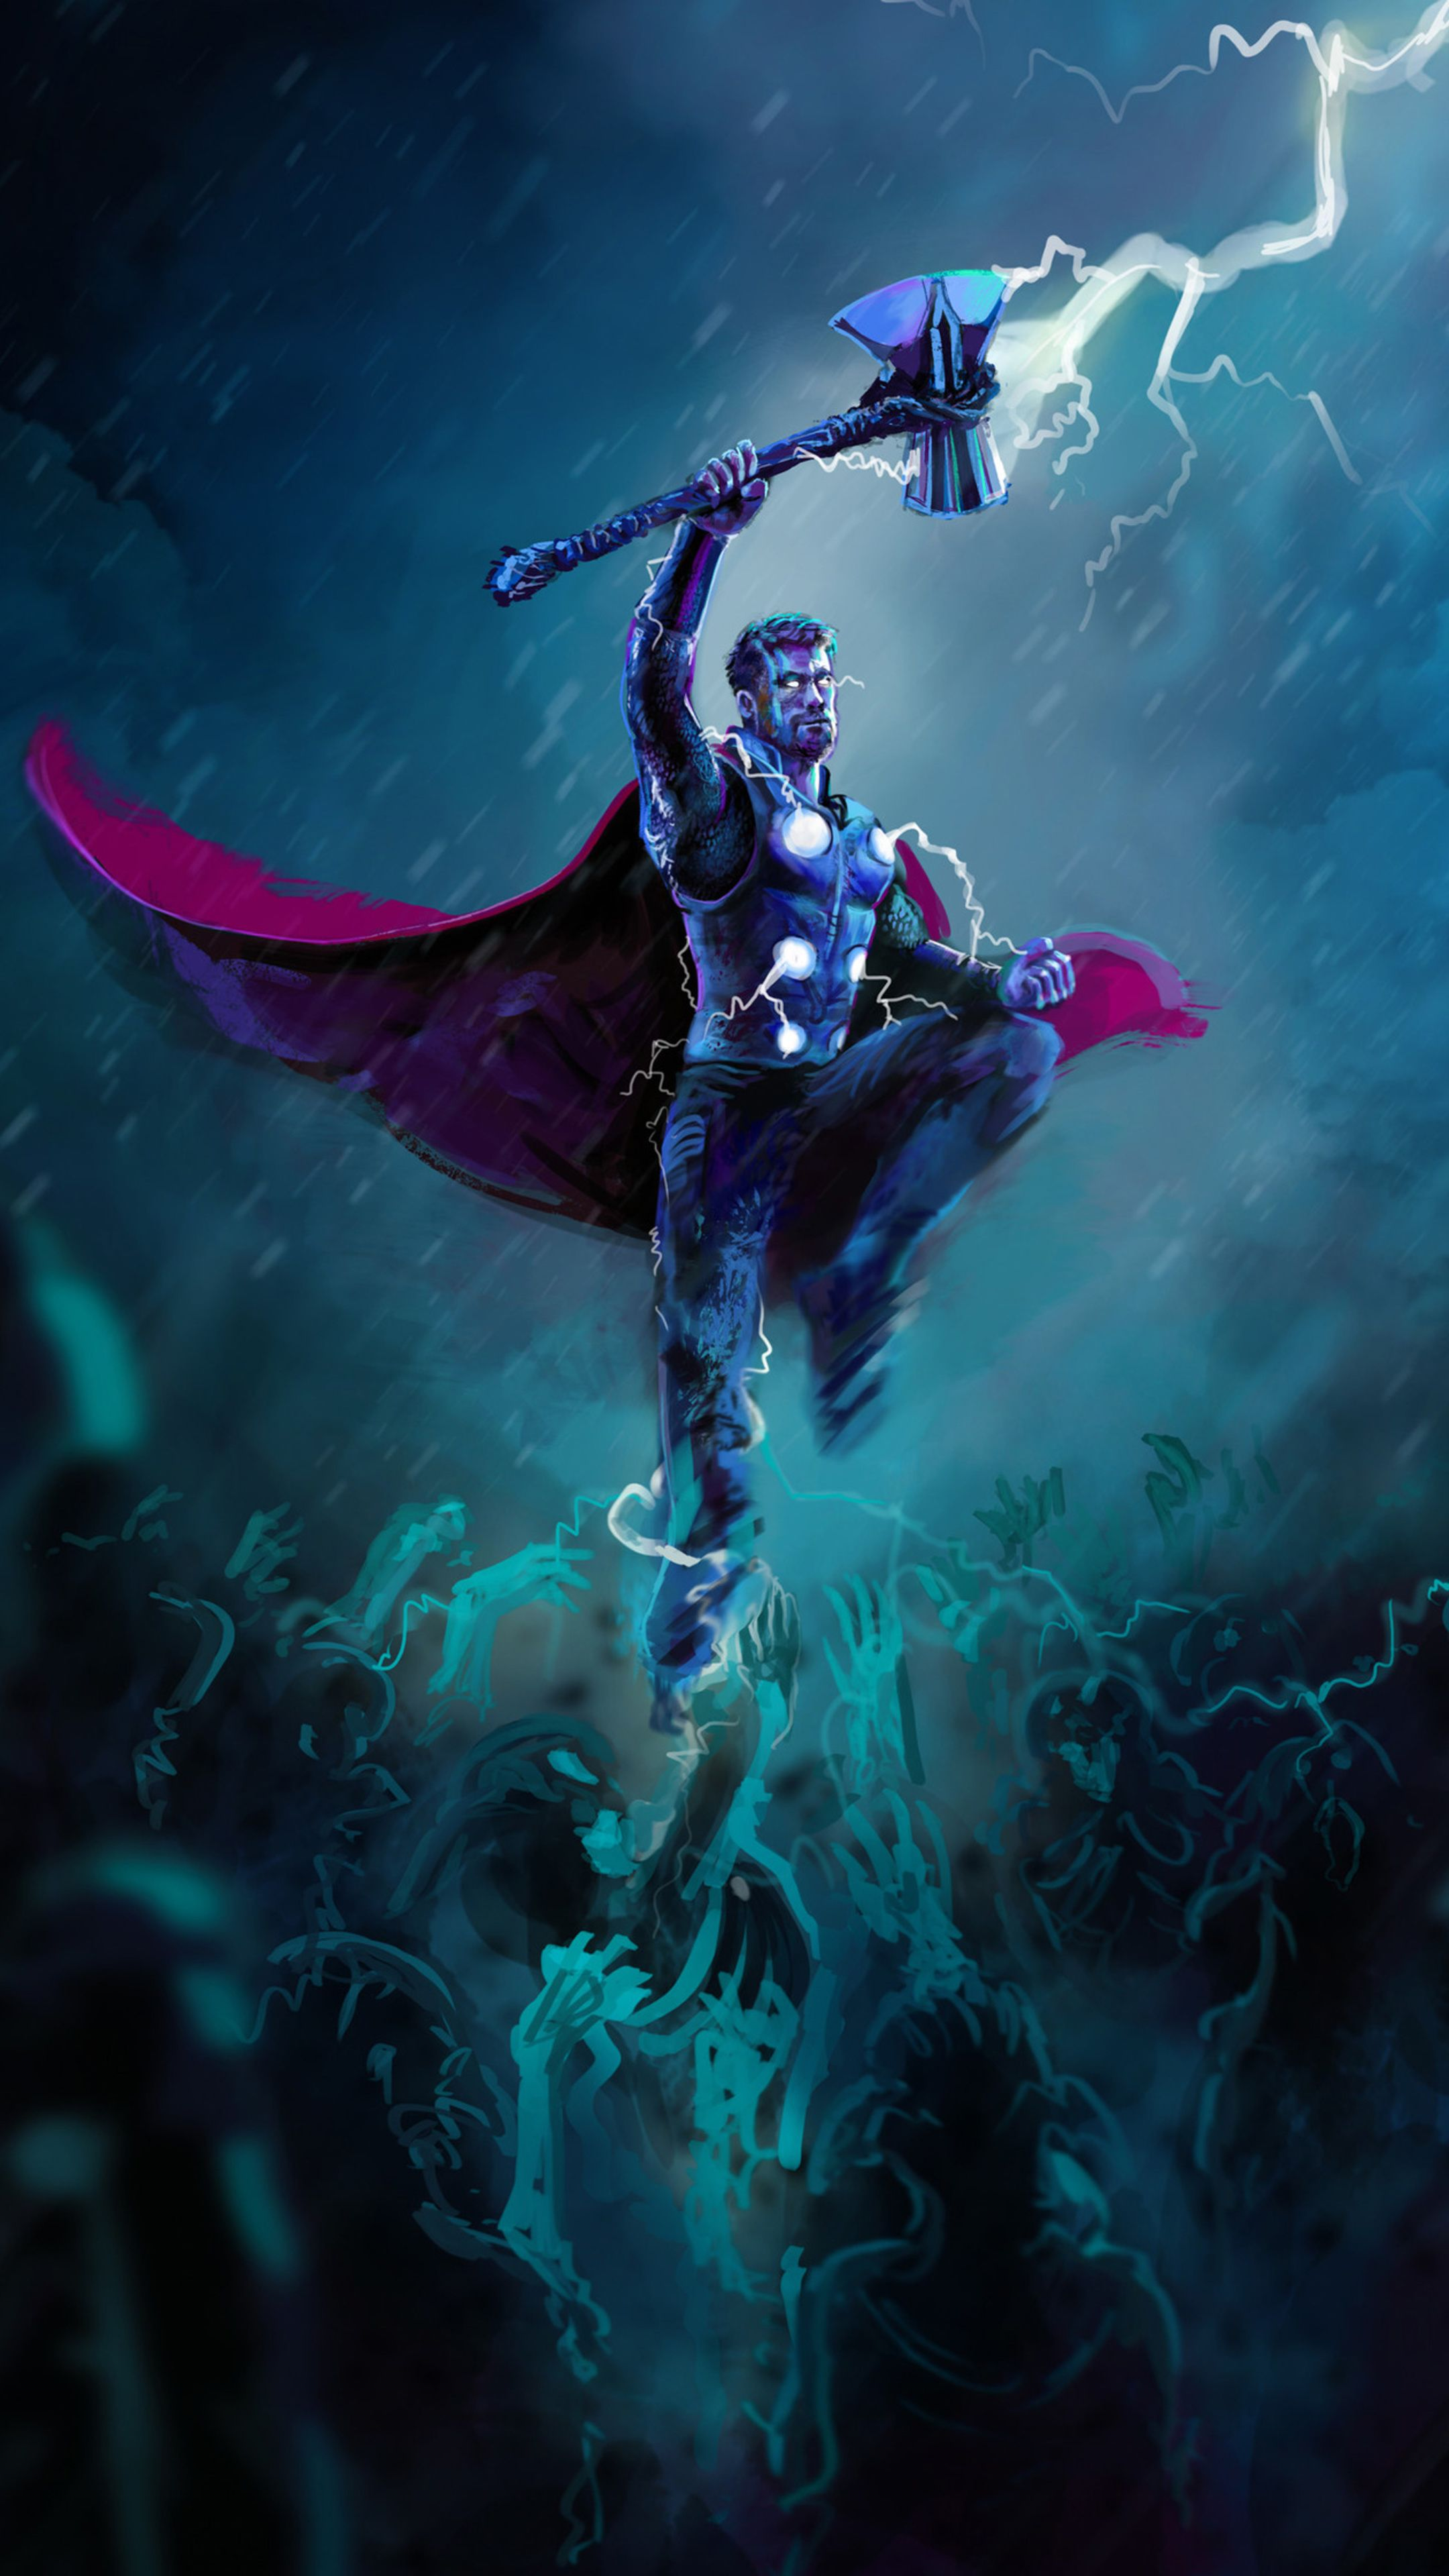 click here for more updates. thor marvel superhero